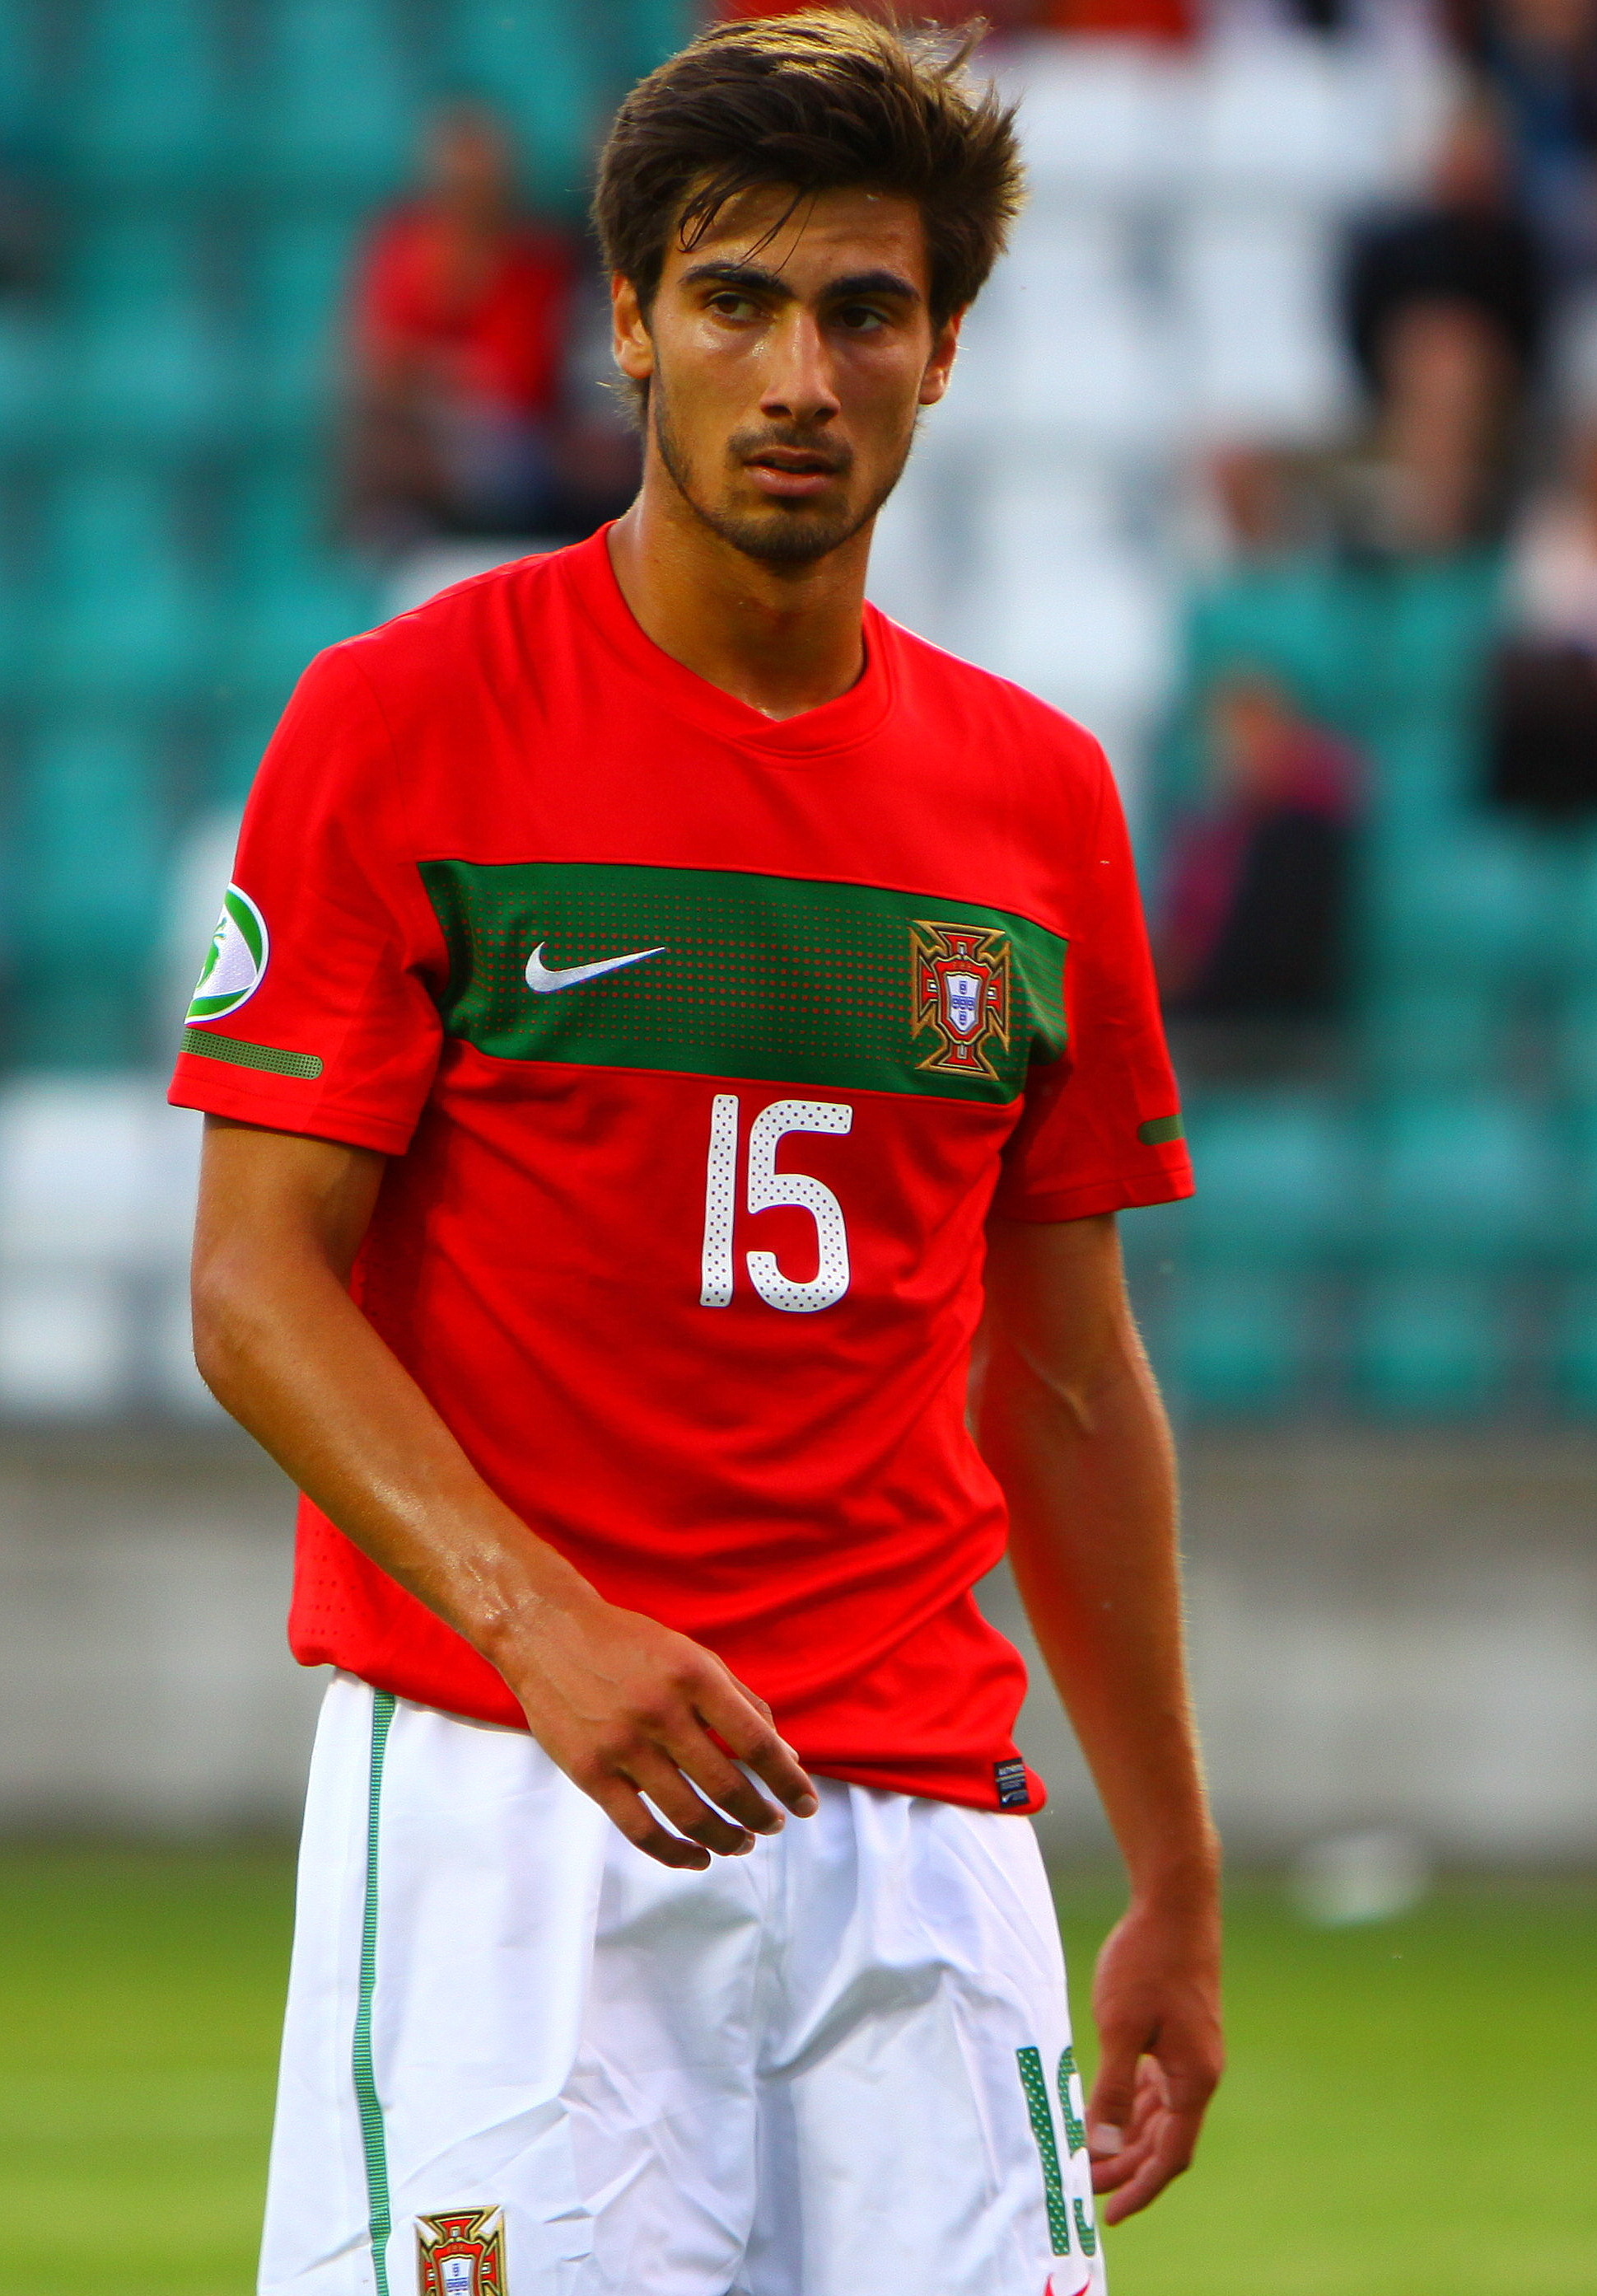 Classify Portuguese Football Player Andre Gomes